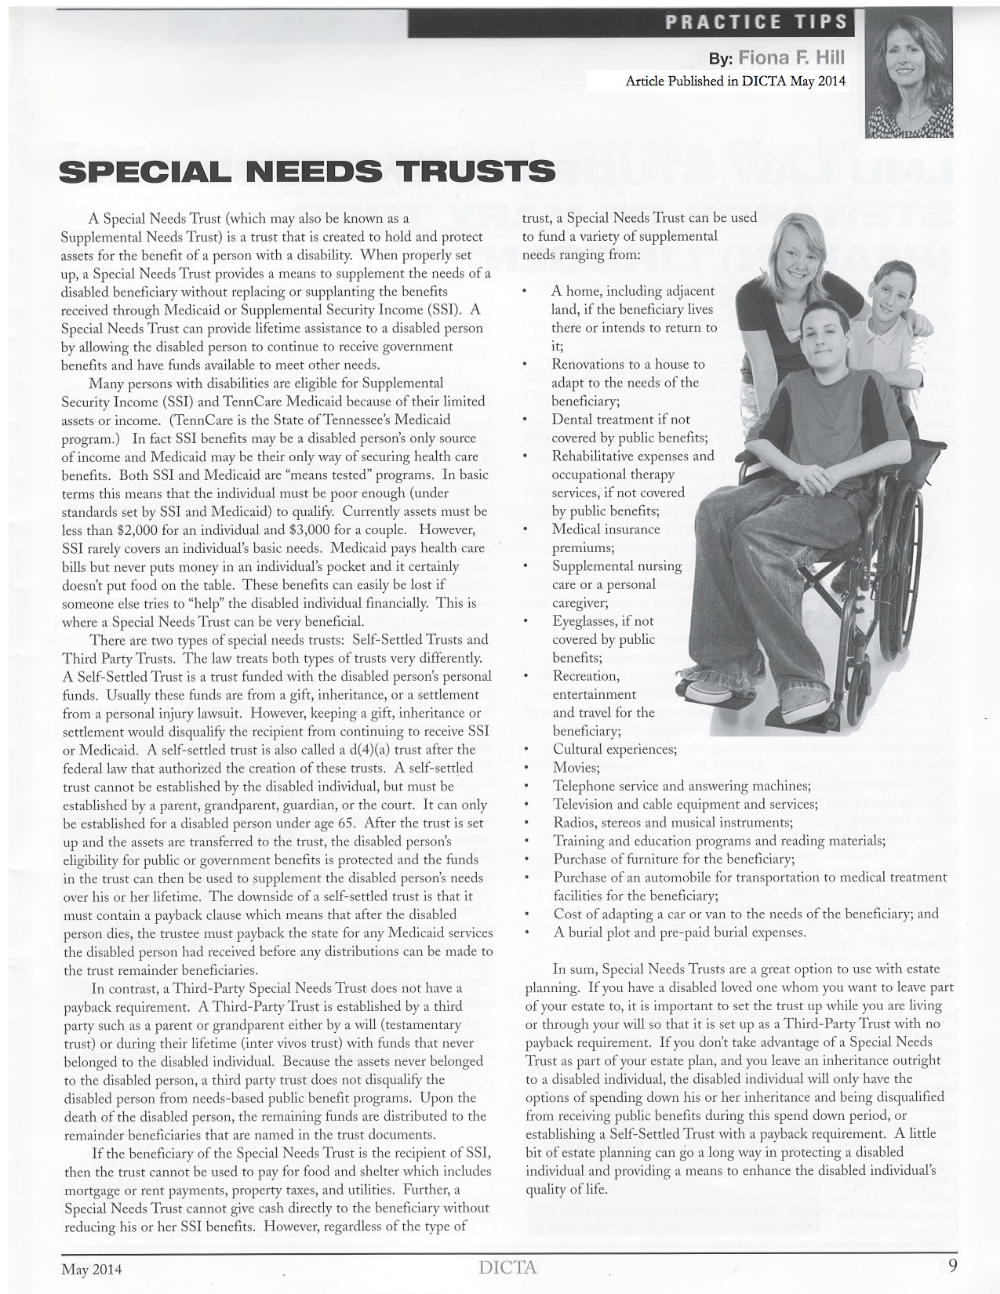 Attorney Fiona Hill speaks about Special Need Trusts